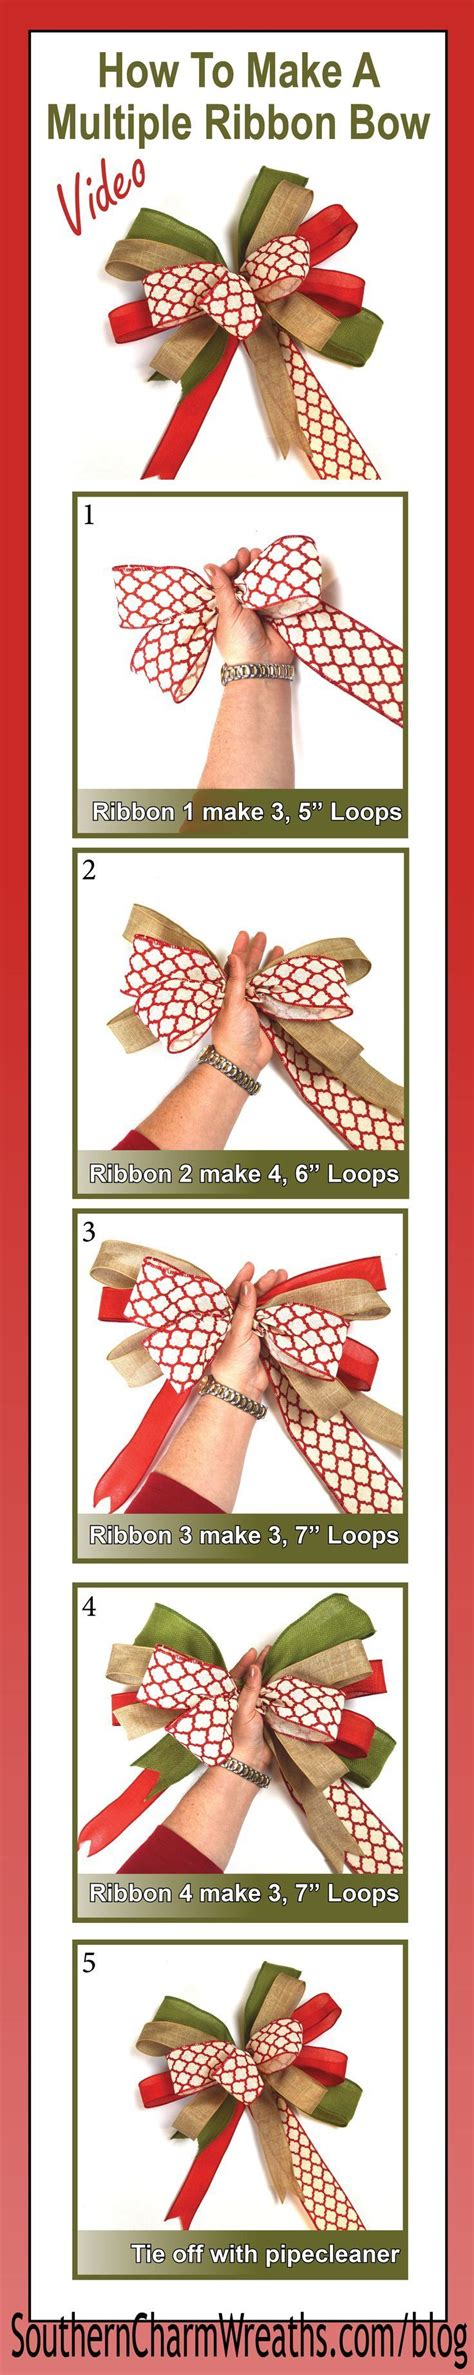 how to tie a bow for christmas tree best 20 wreaths ideas on diy wreaths wreaths diy